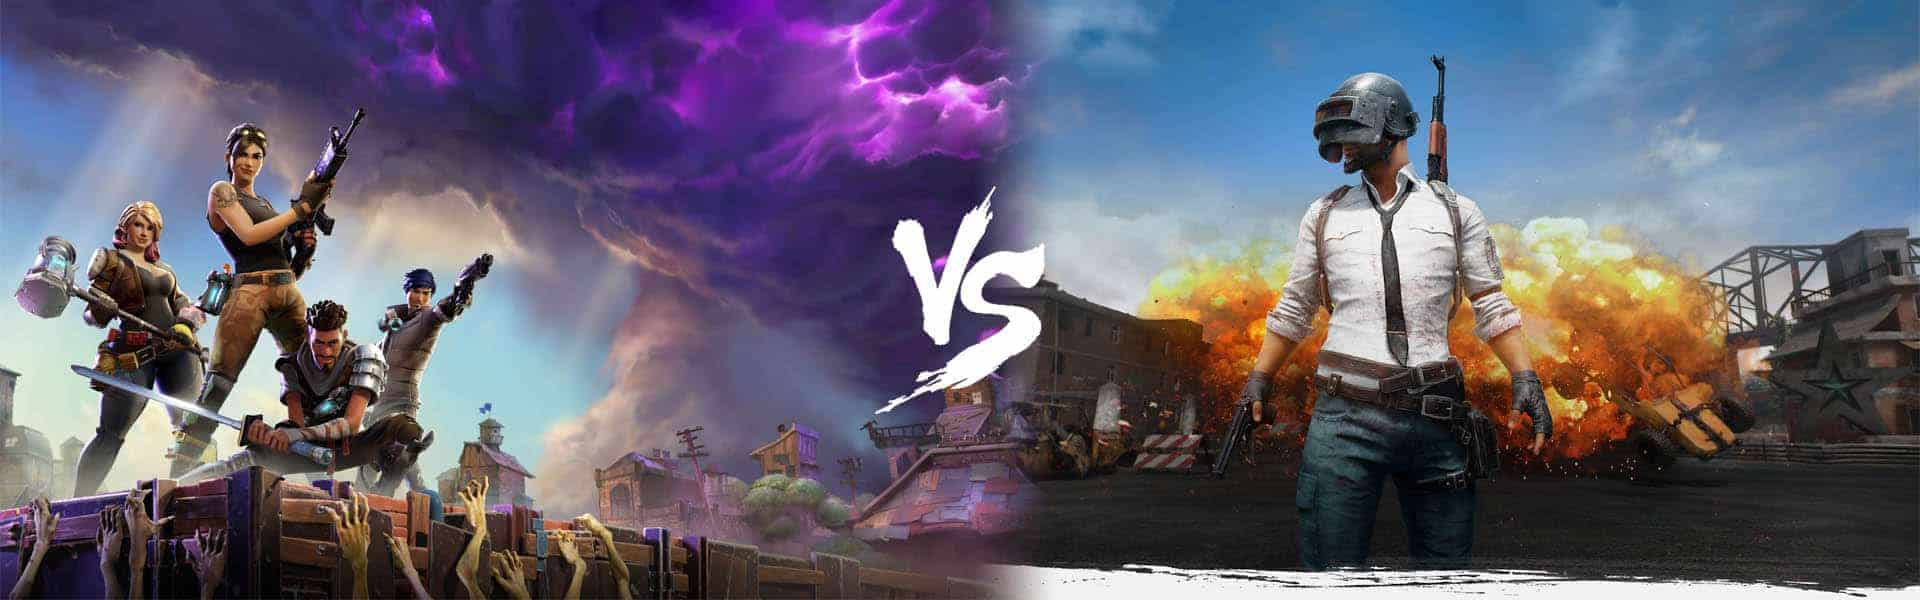 Fortnite vs PUBG – Which One Is The Best Battle Royale Game?